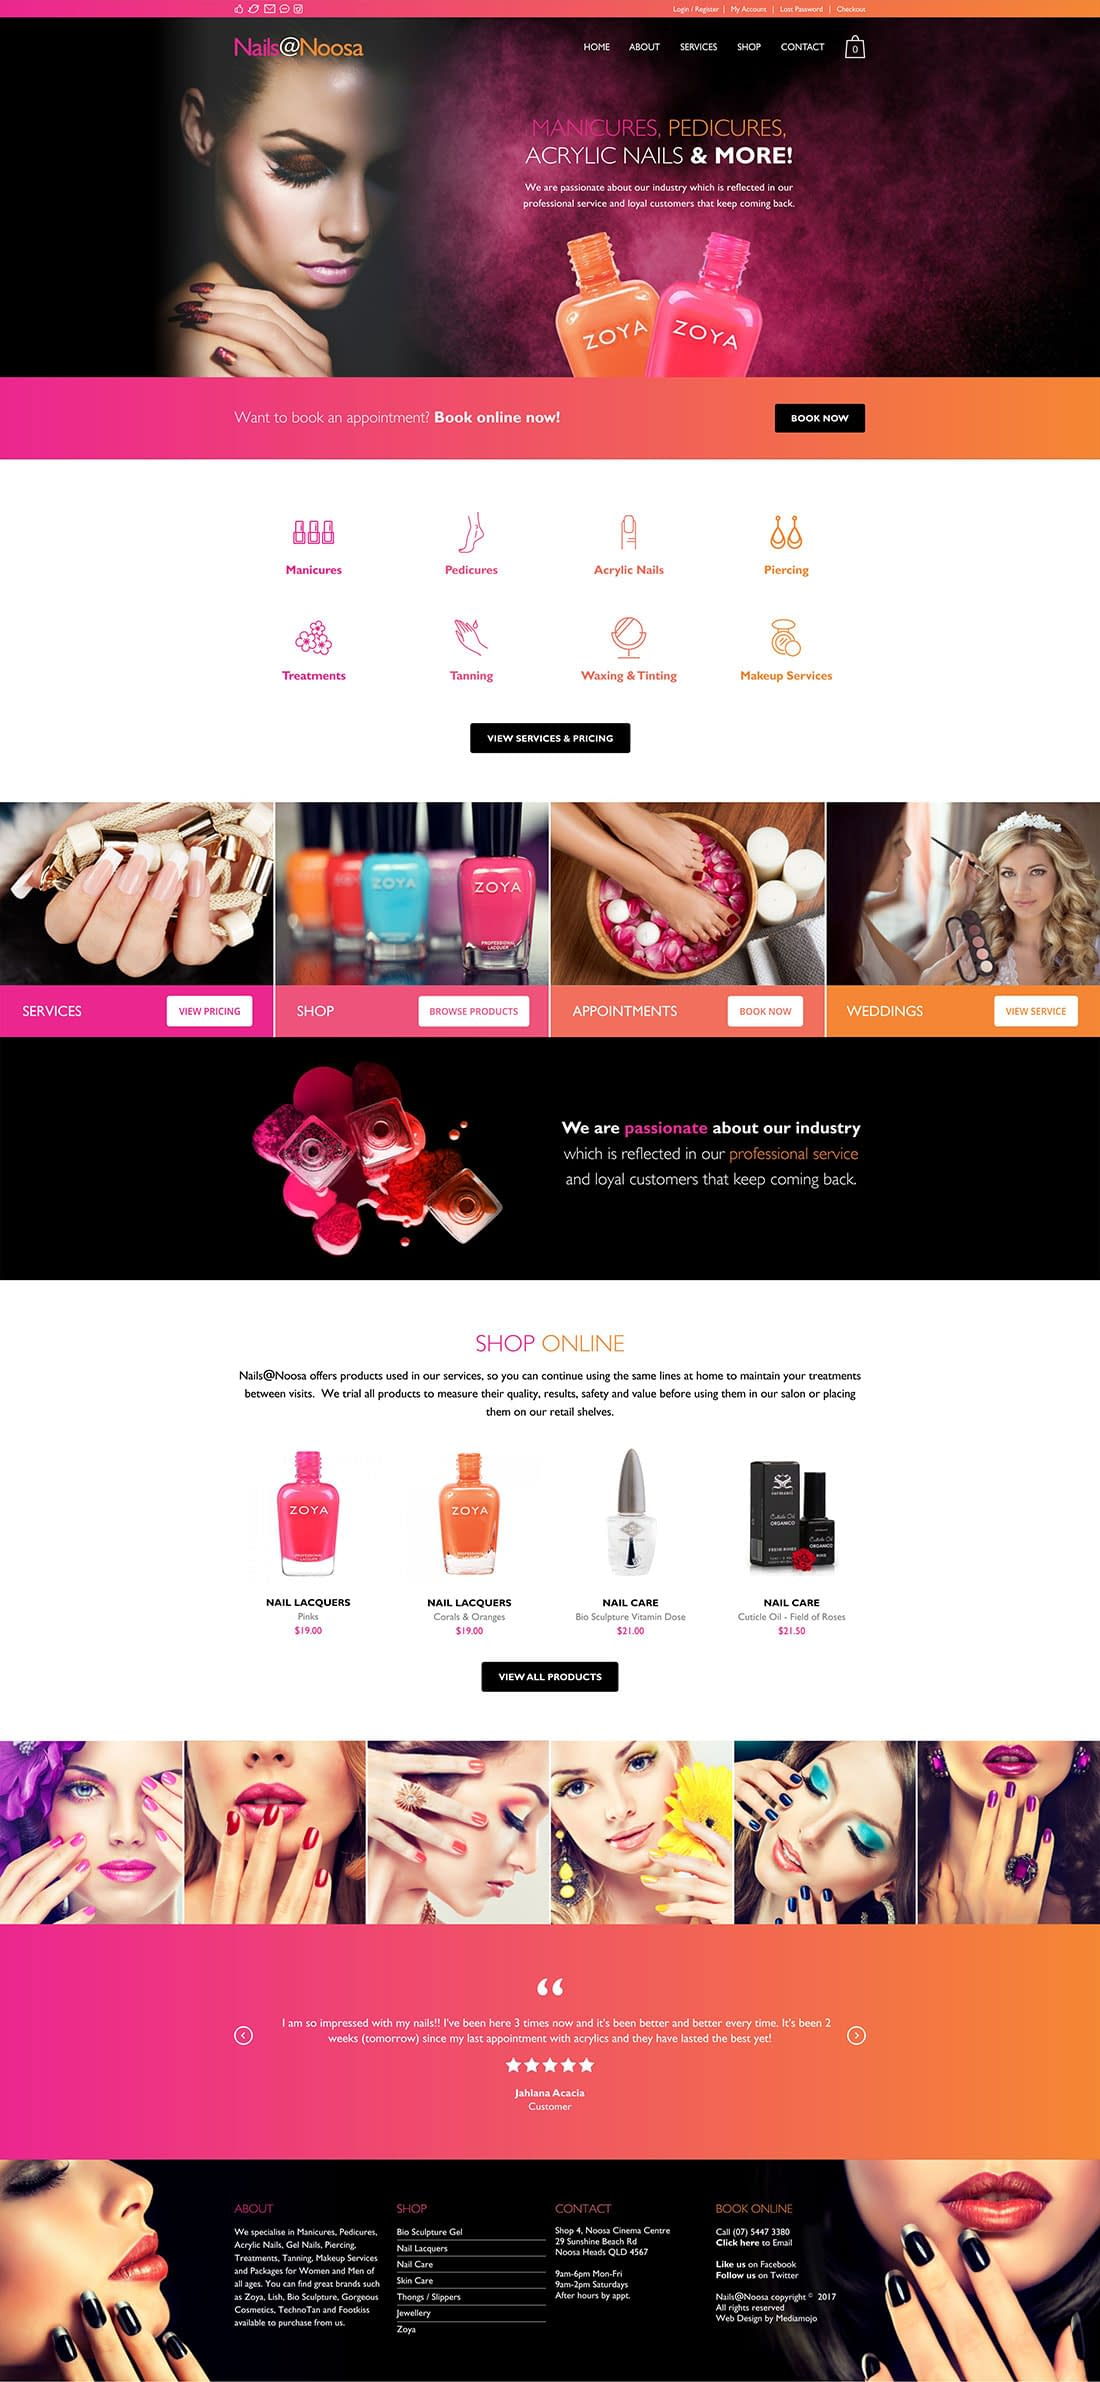 Nails at Noosa website home page